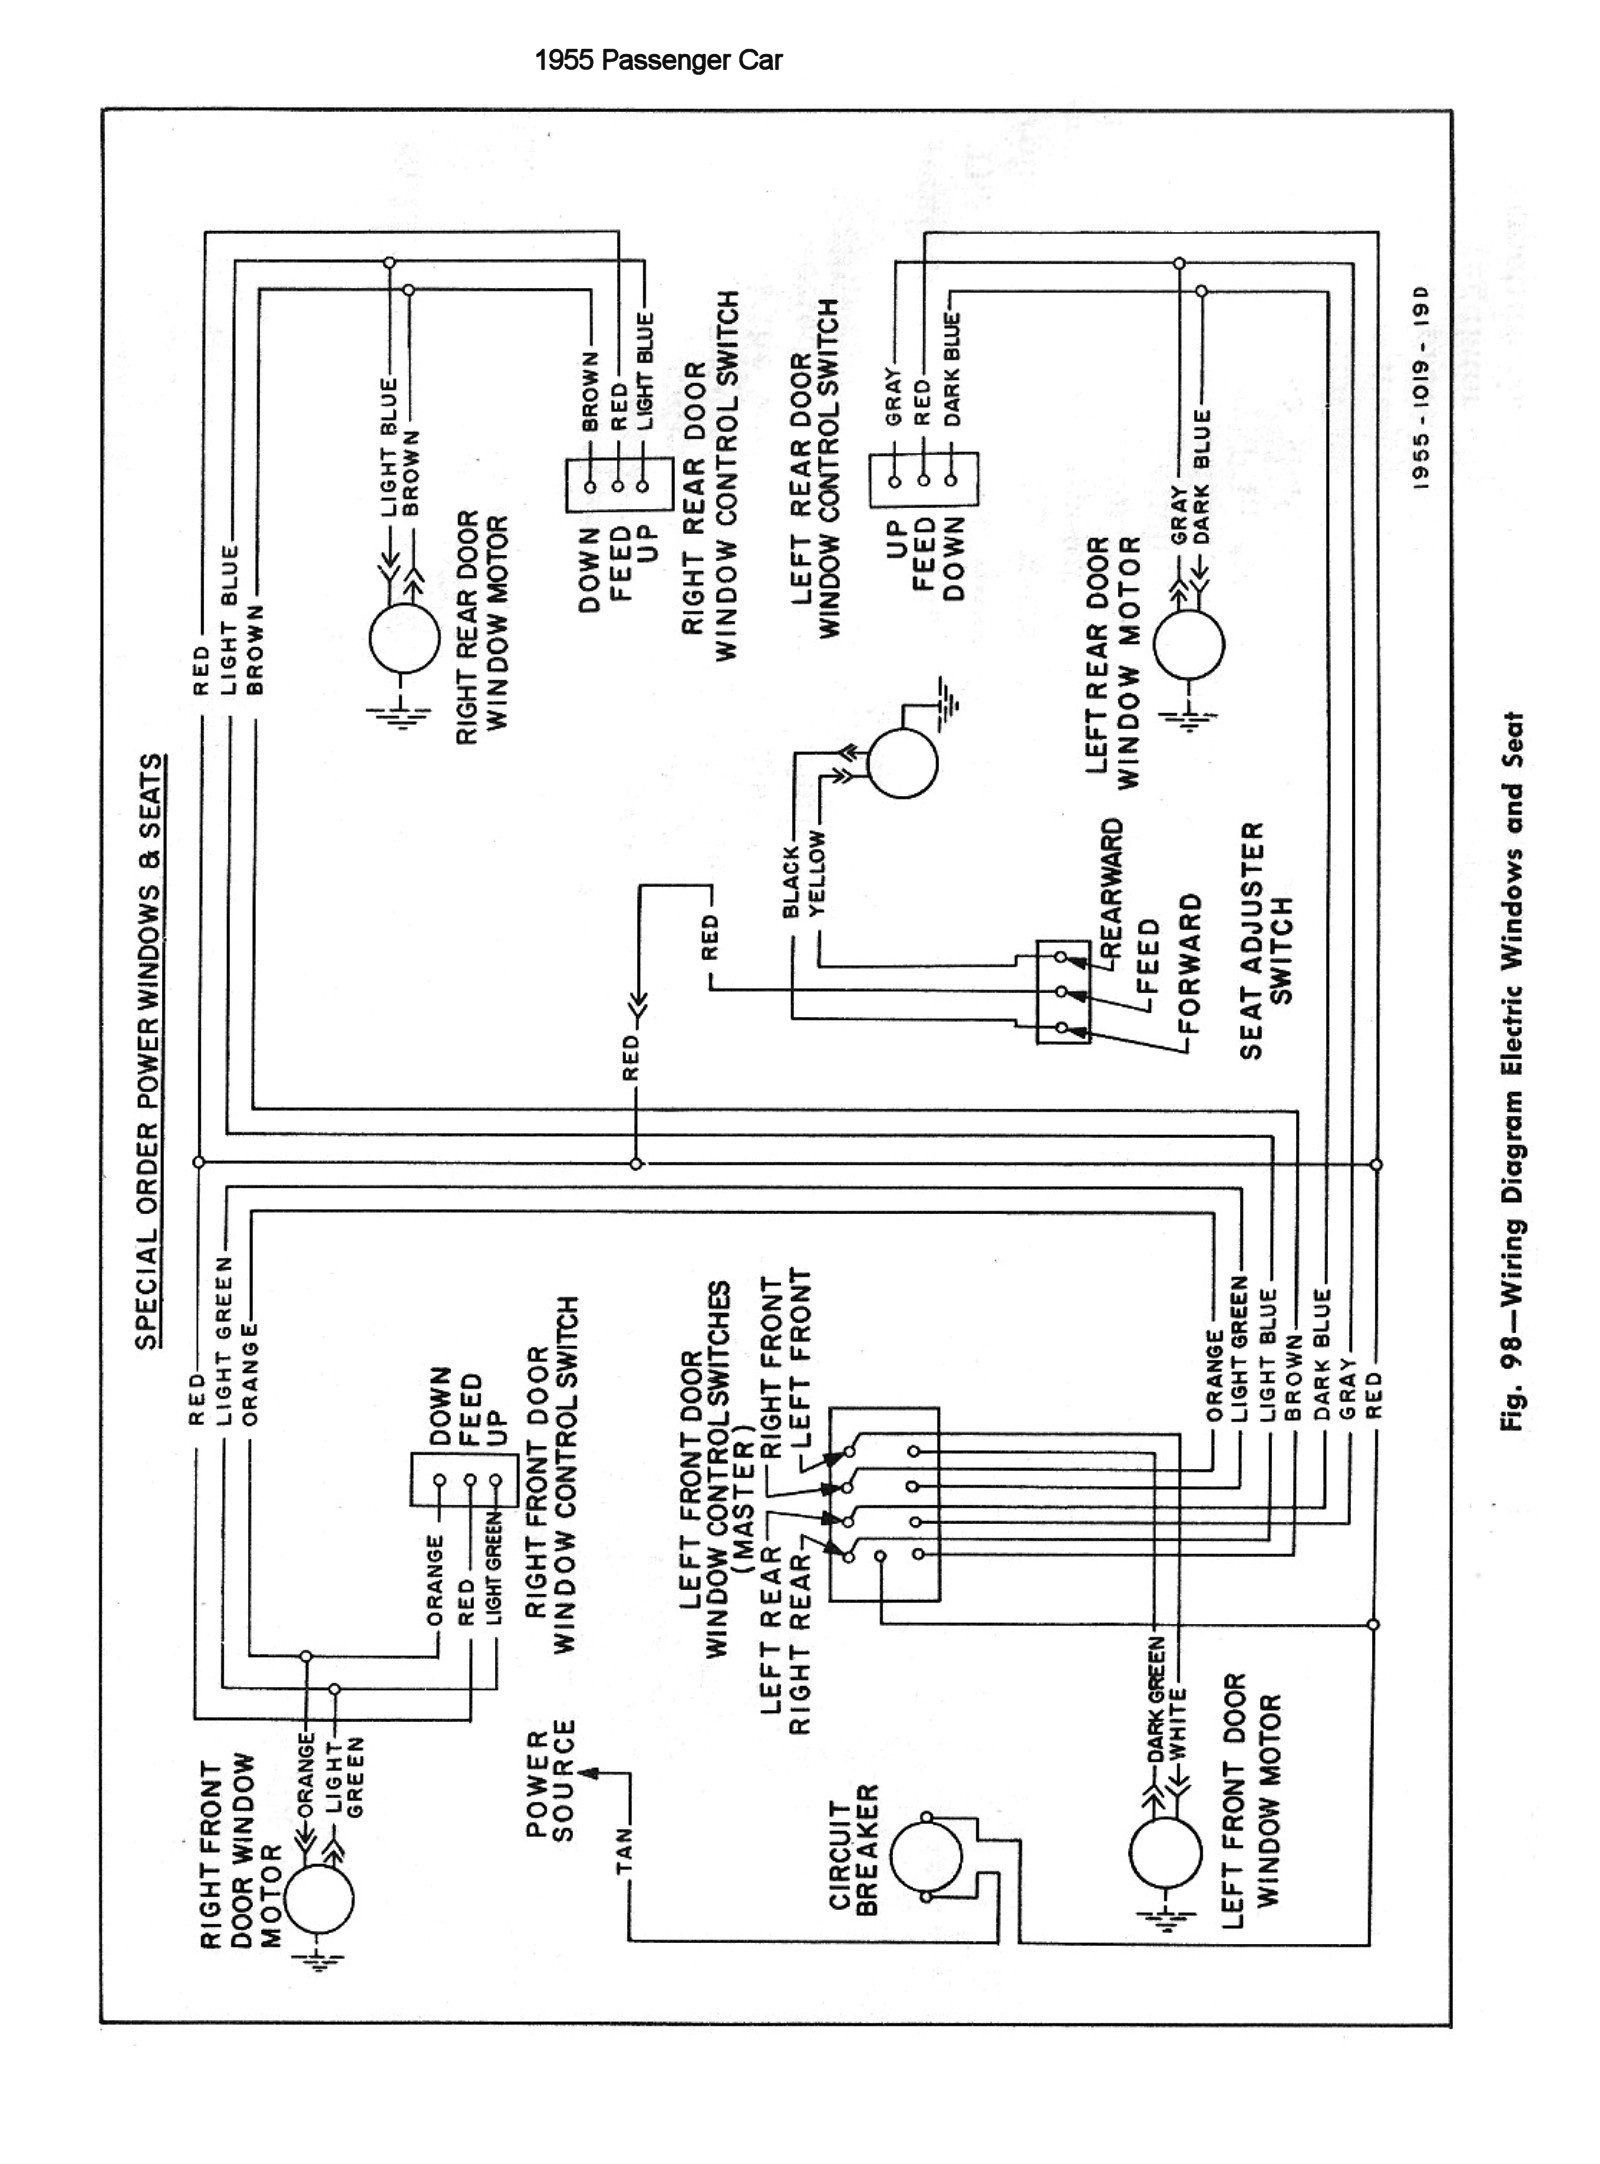 hight resolution of 1955 chevy turn signal wiring diagram wiringdiagram org rh pinterest com 55 chevy truck turn signal